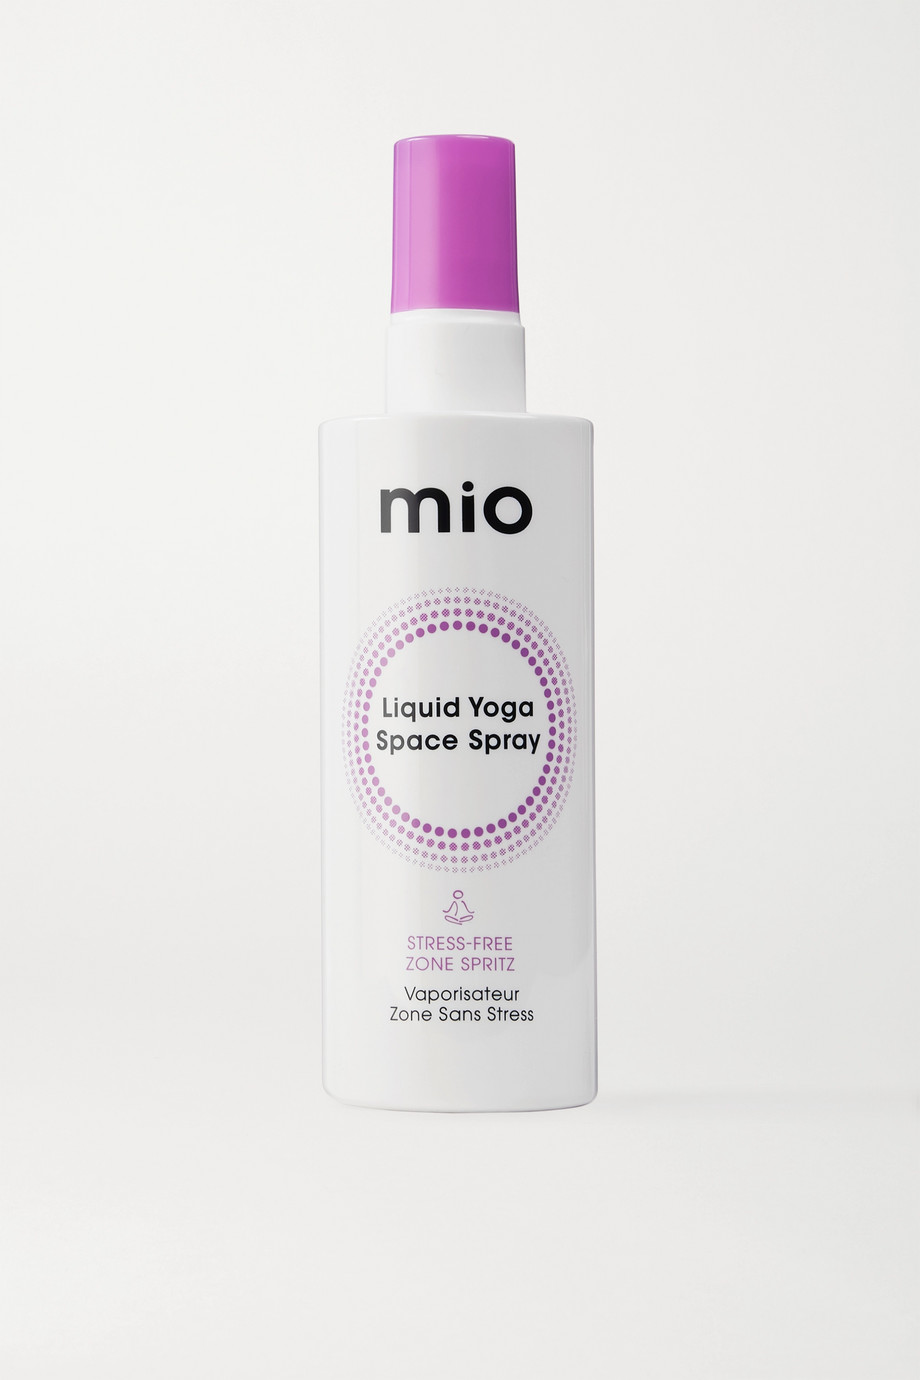 Mio Liquid Yoga Stress-Free Space Spray, 130 ml – Duftspray